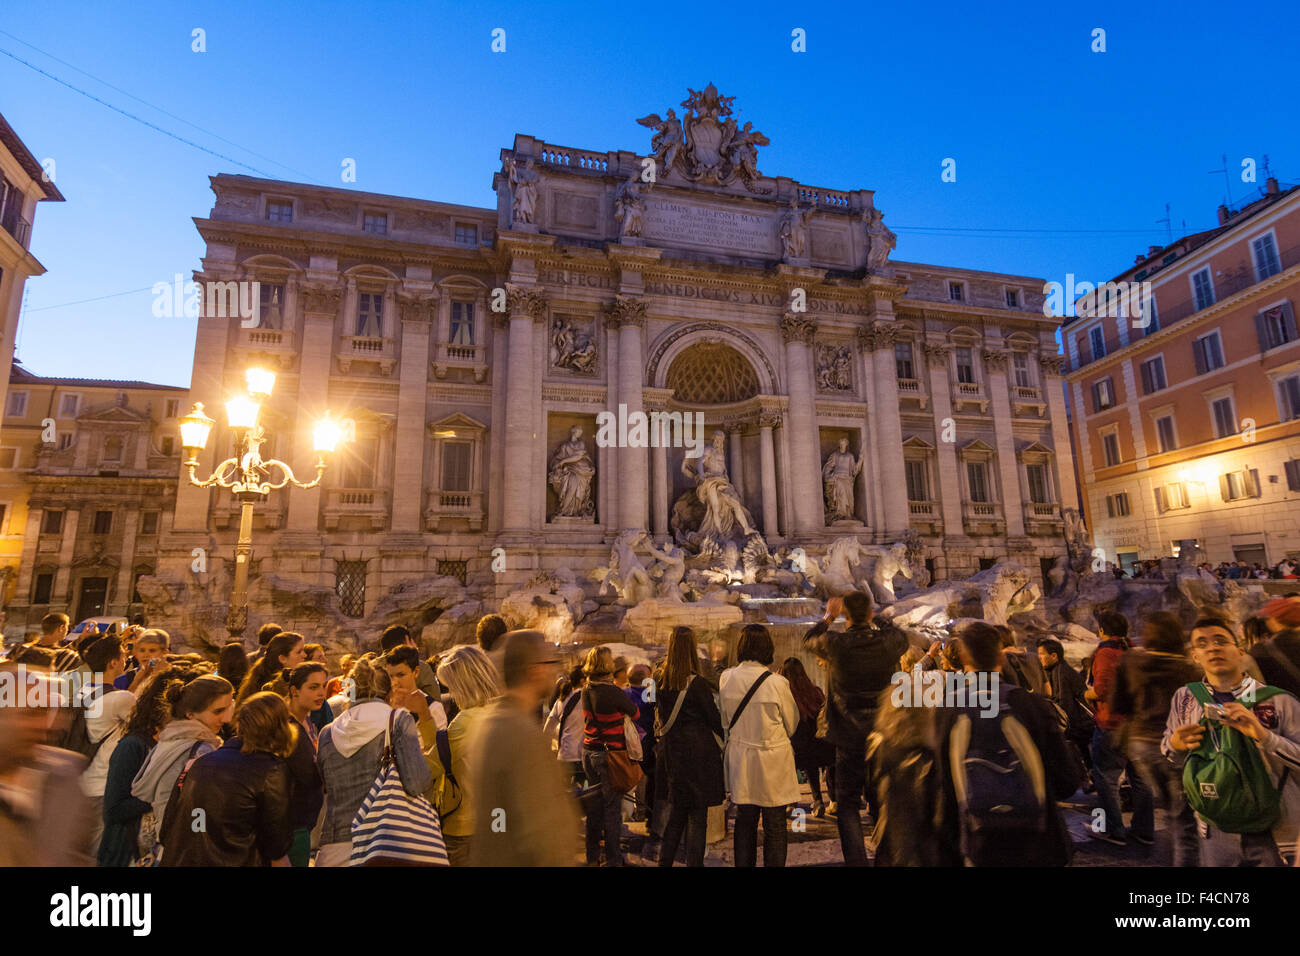 Tourists at Trevi Fountain, Rome, Italy - Stock Image